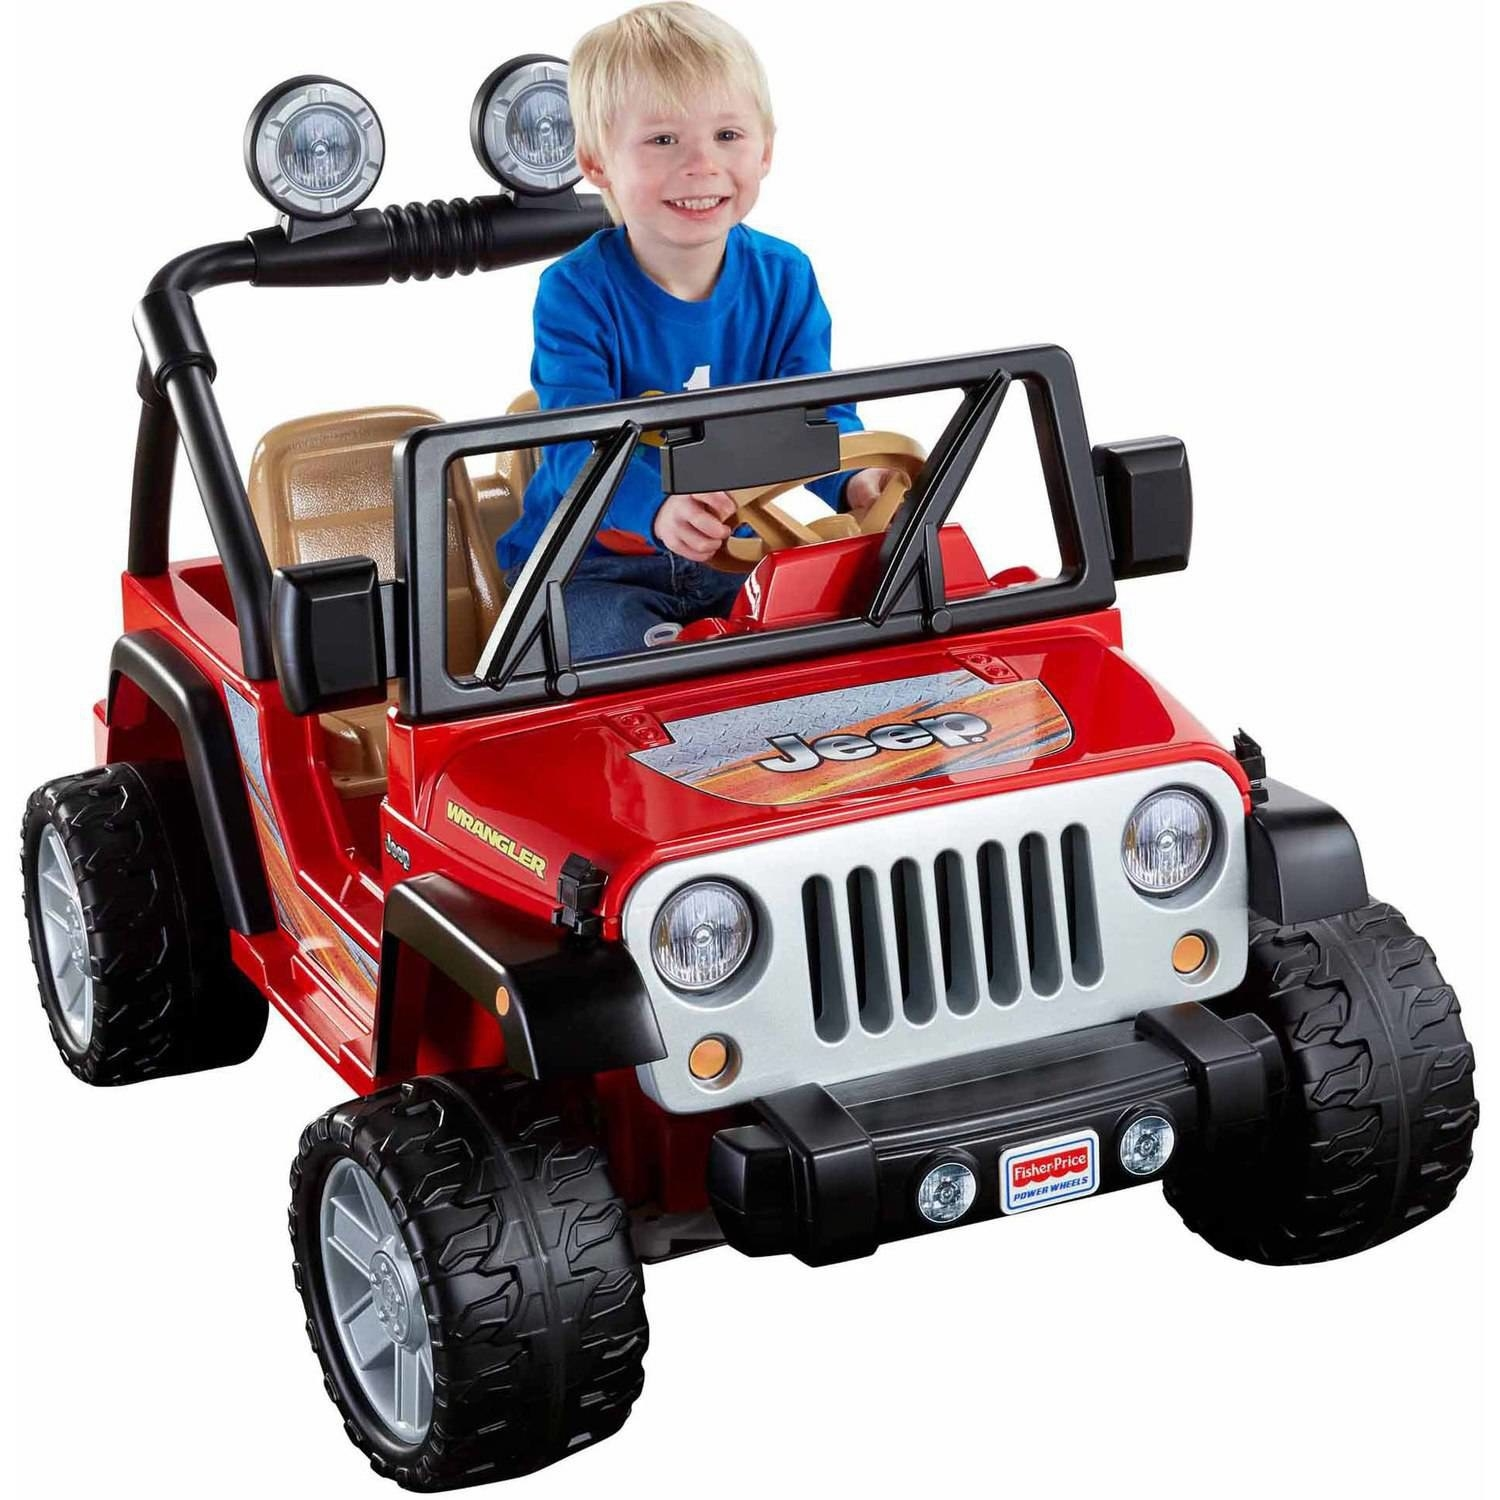 child riding in a red power wheels jeep wrangler toy